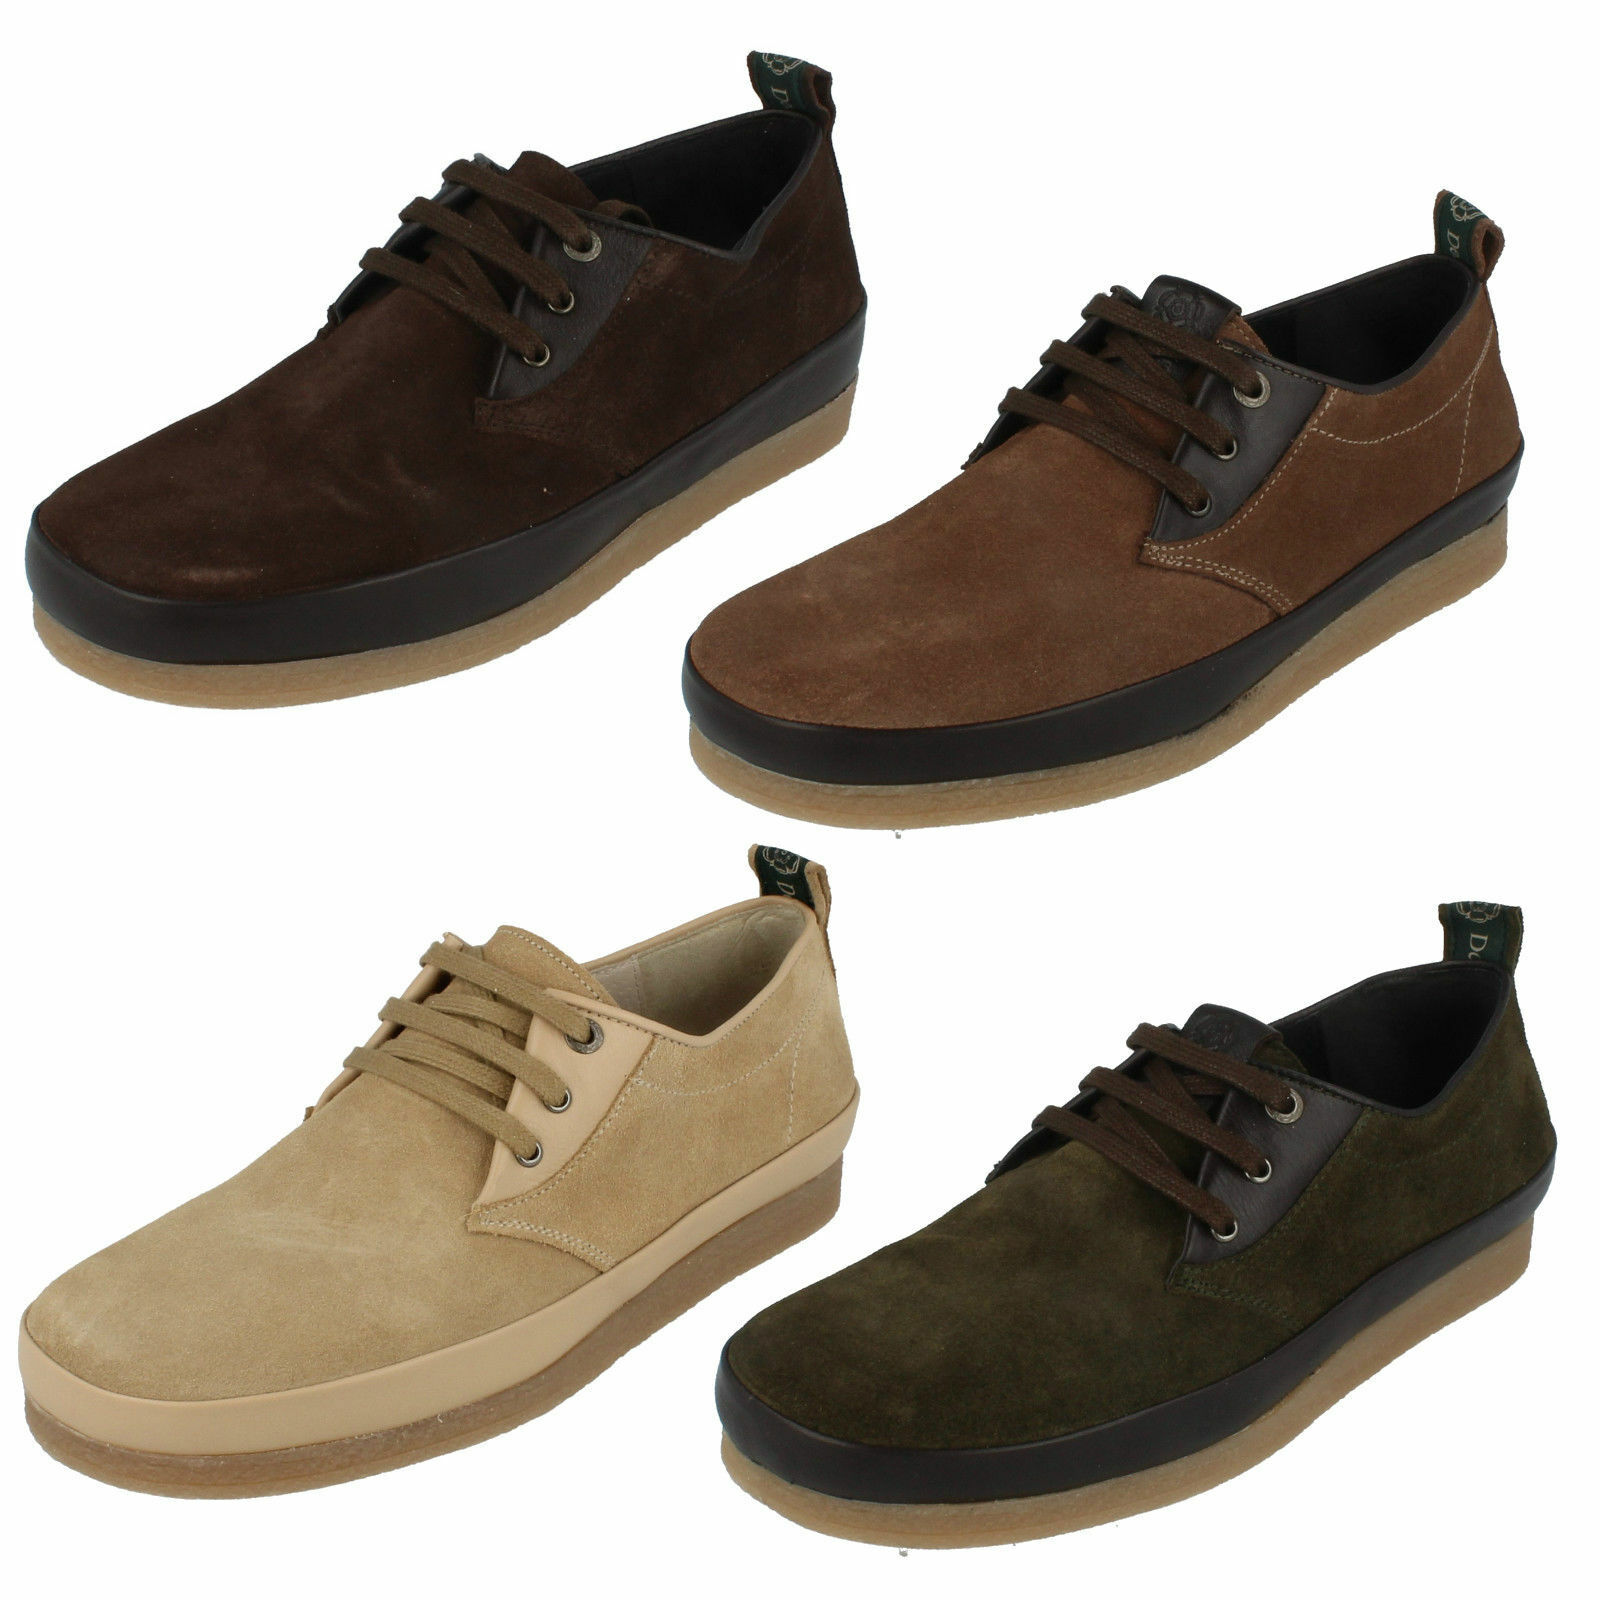 Mens Nicholas Deakins Suede Leather Lace Ups- ACCONA - 3 Colours- Great Price